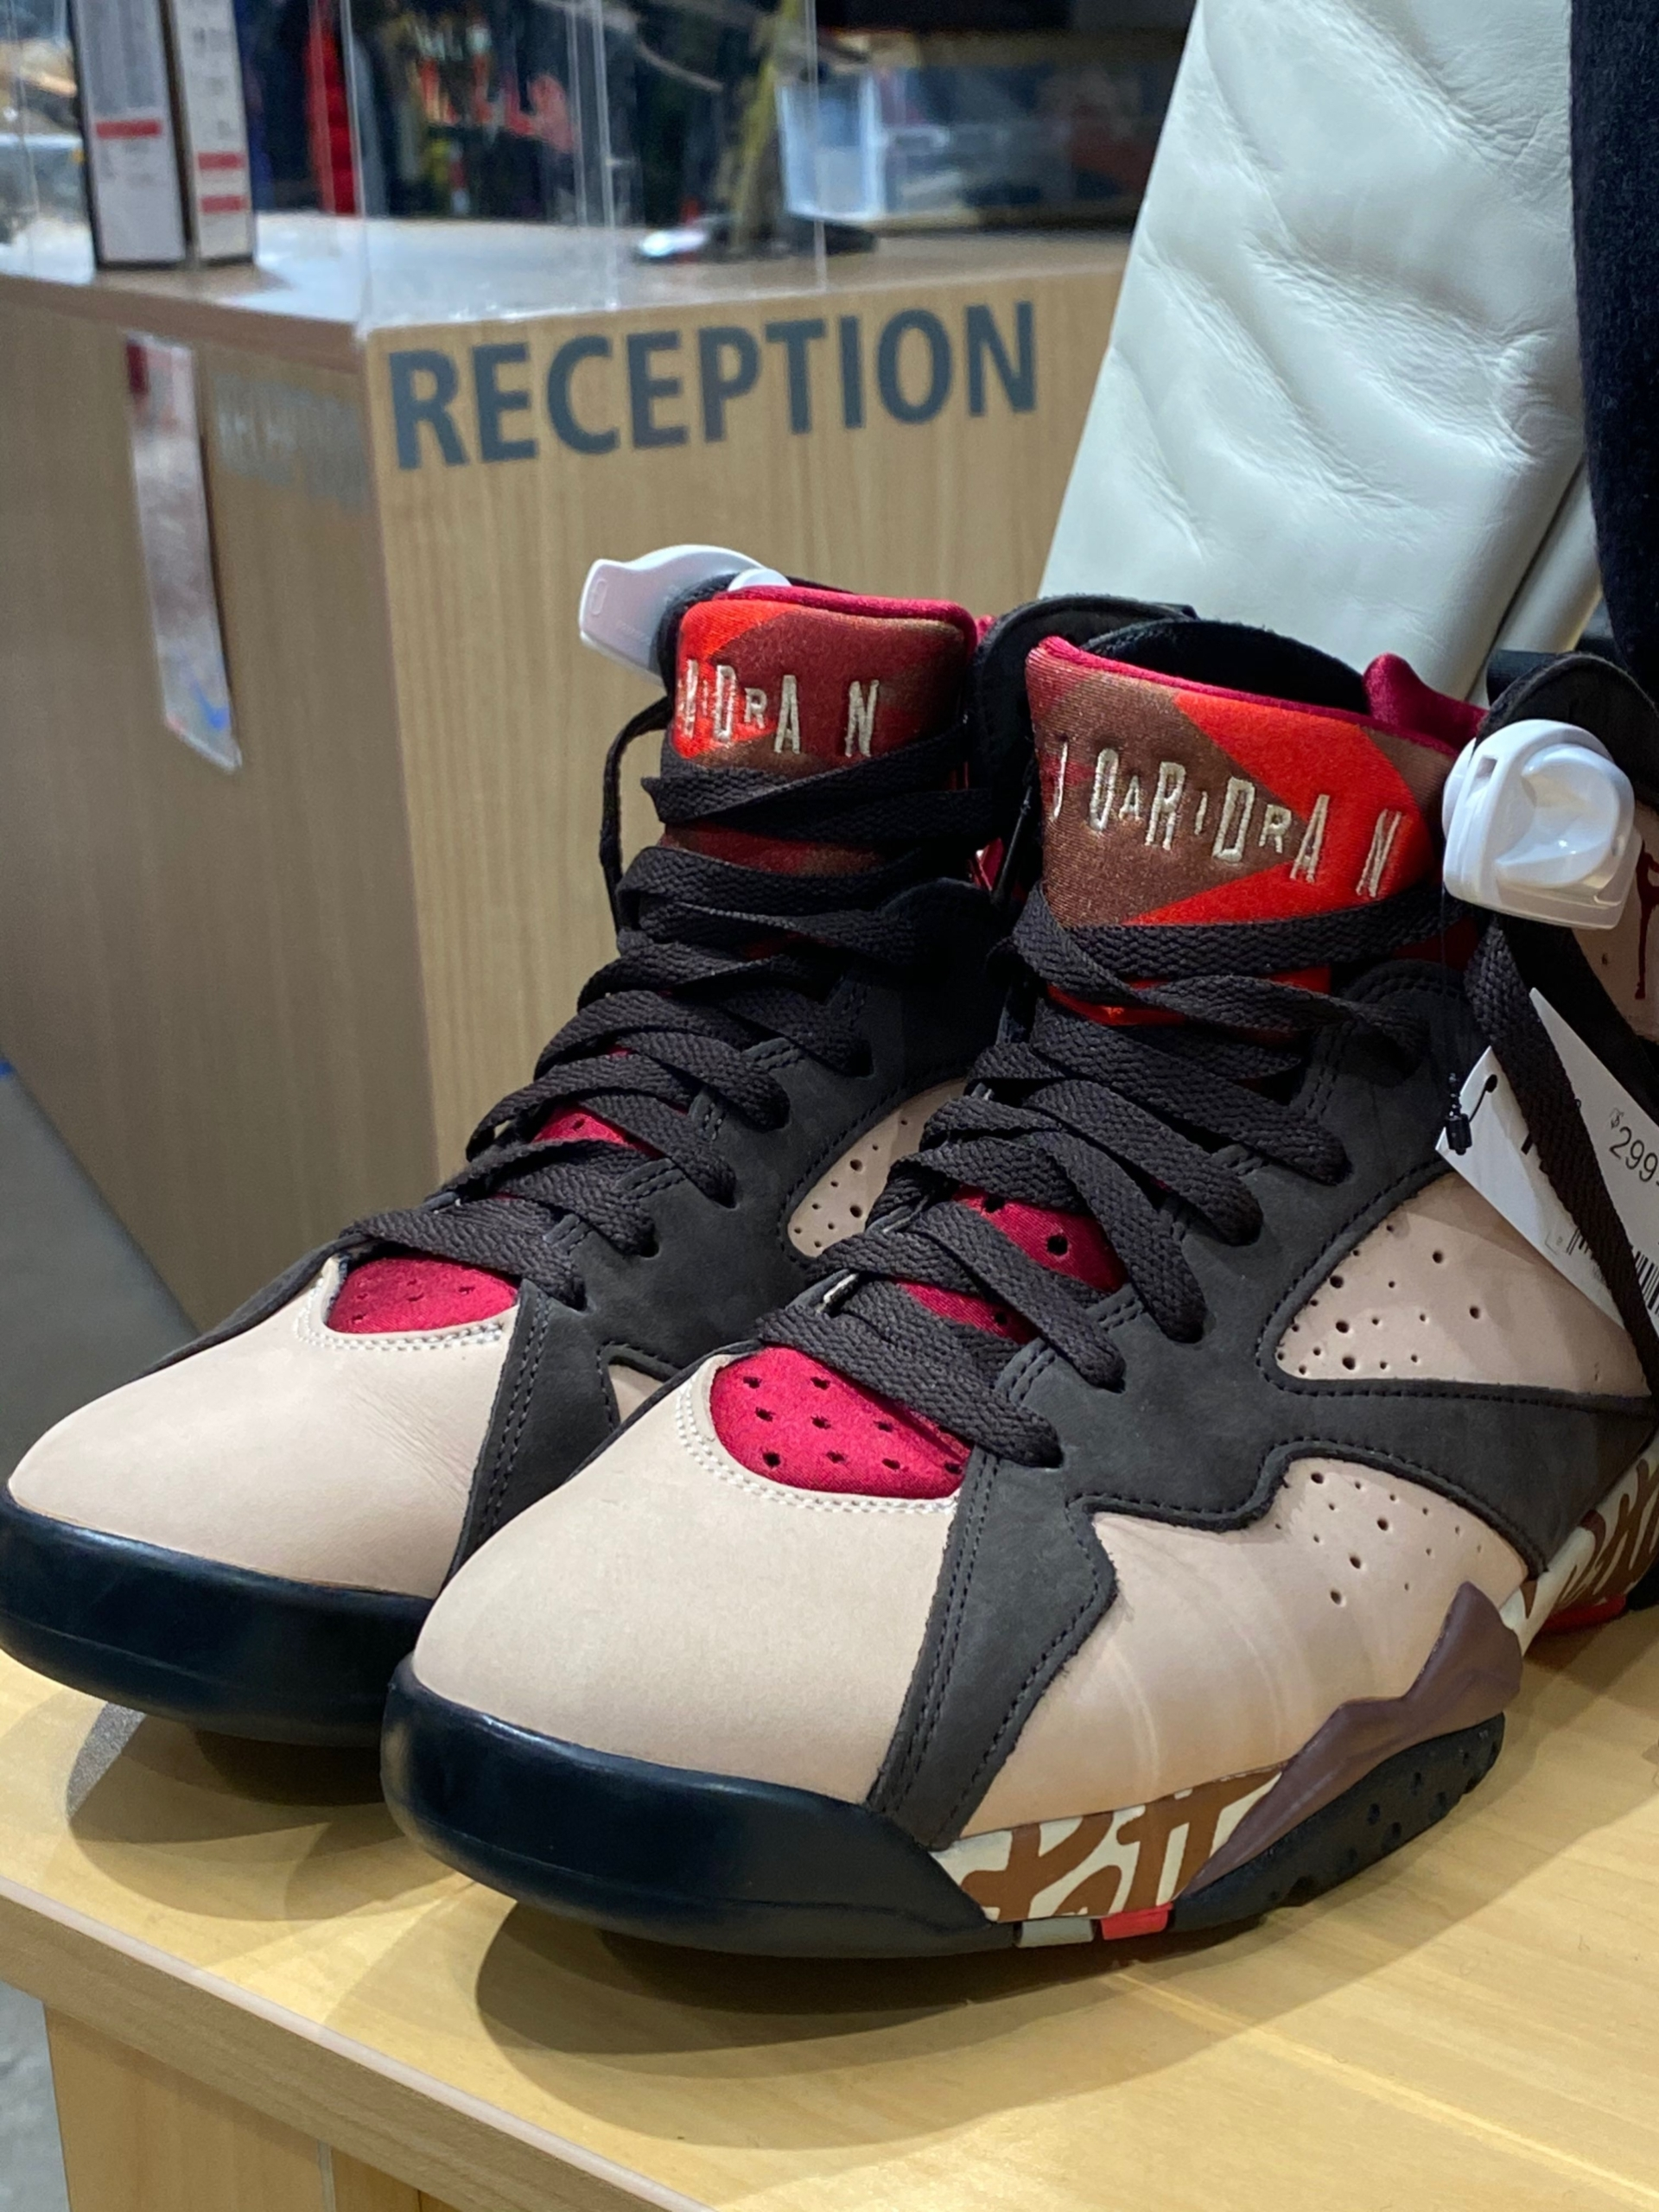 Thrift stores in NYC Feature Air Jordans